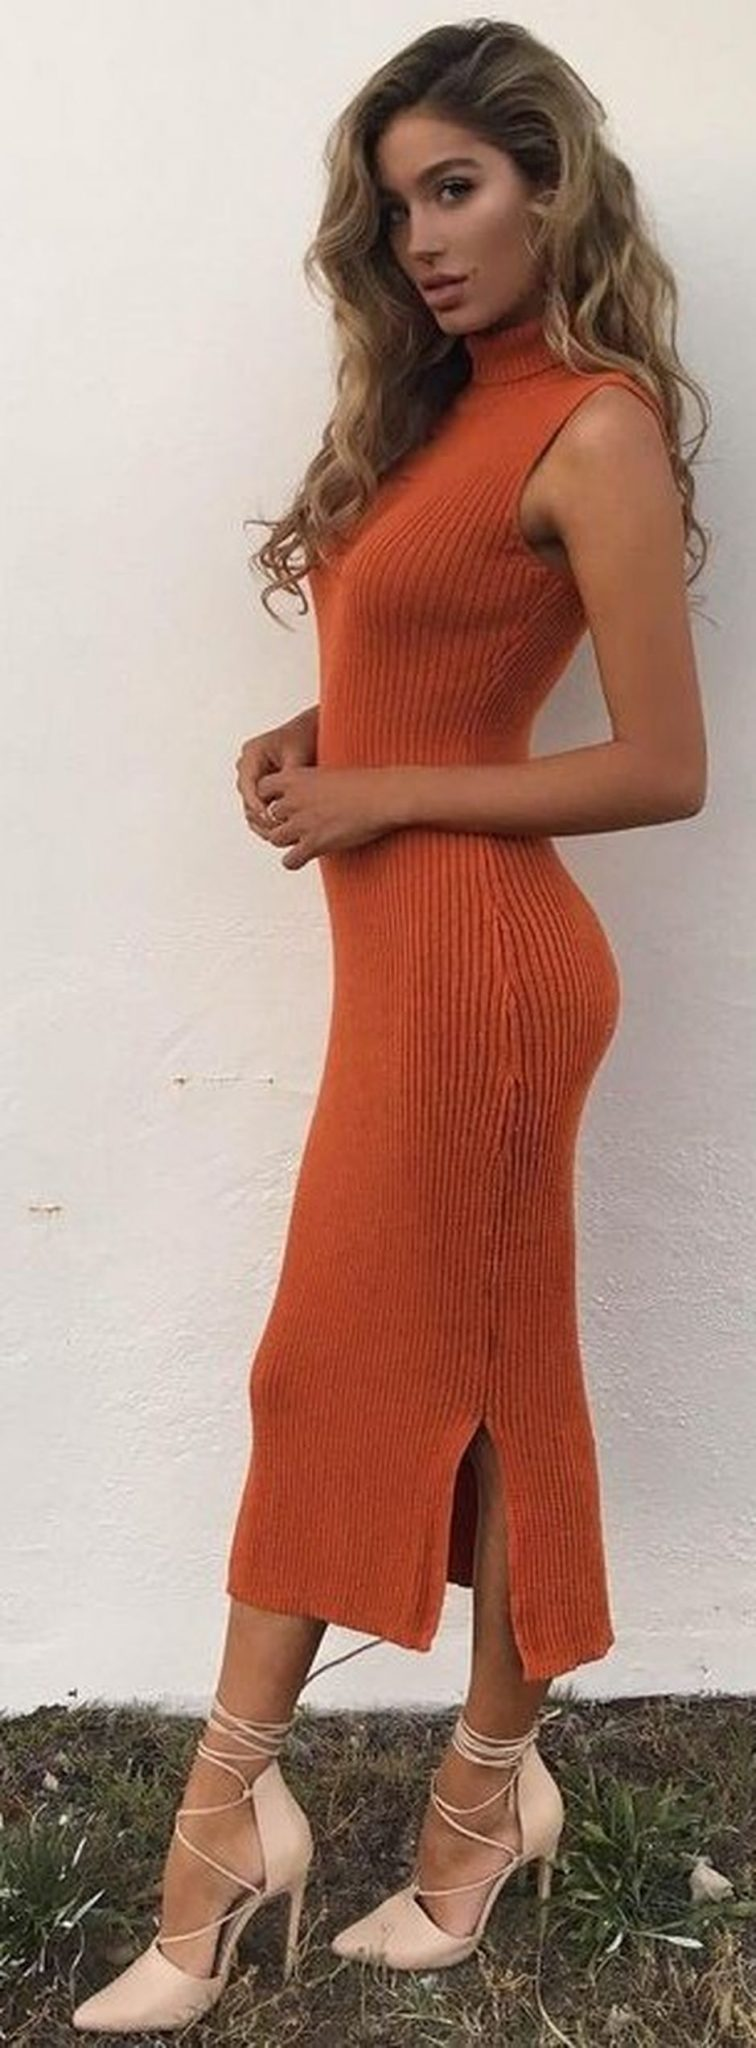 55 Orange Outfit Ideas That Make You Look Young and Fresh 13